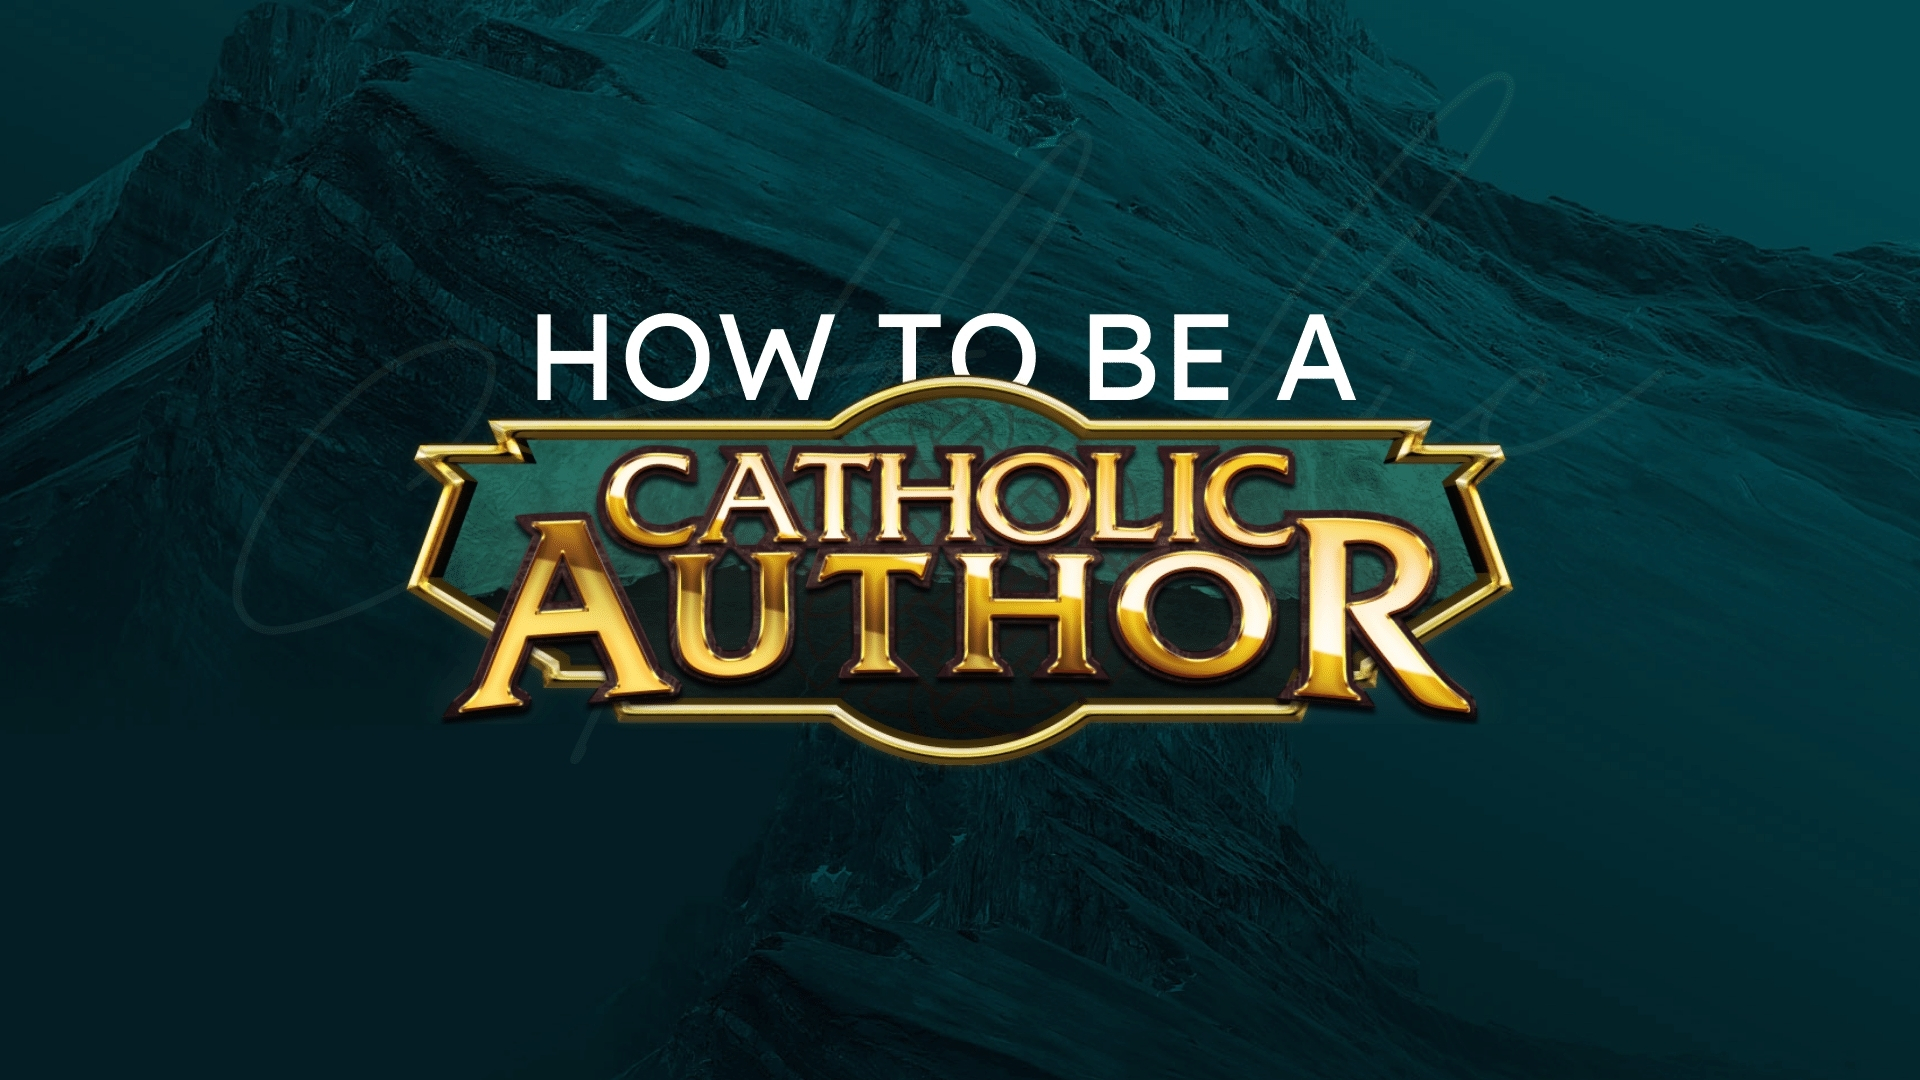 Free Course: How to be a Catholic Author | Helping authors write exciting novels, connect faith with fiction, and be better Catholics!